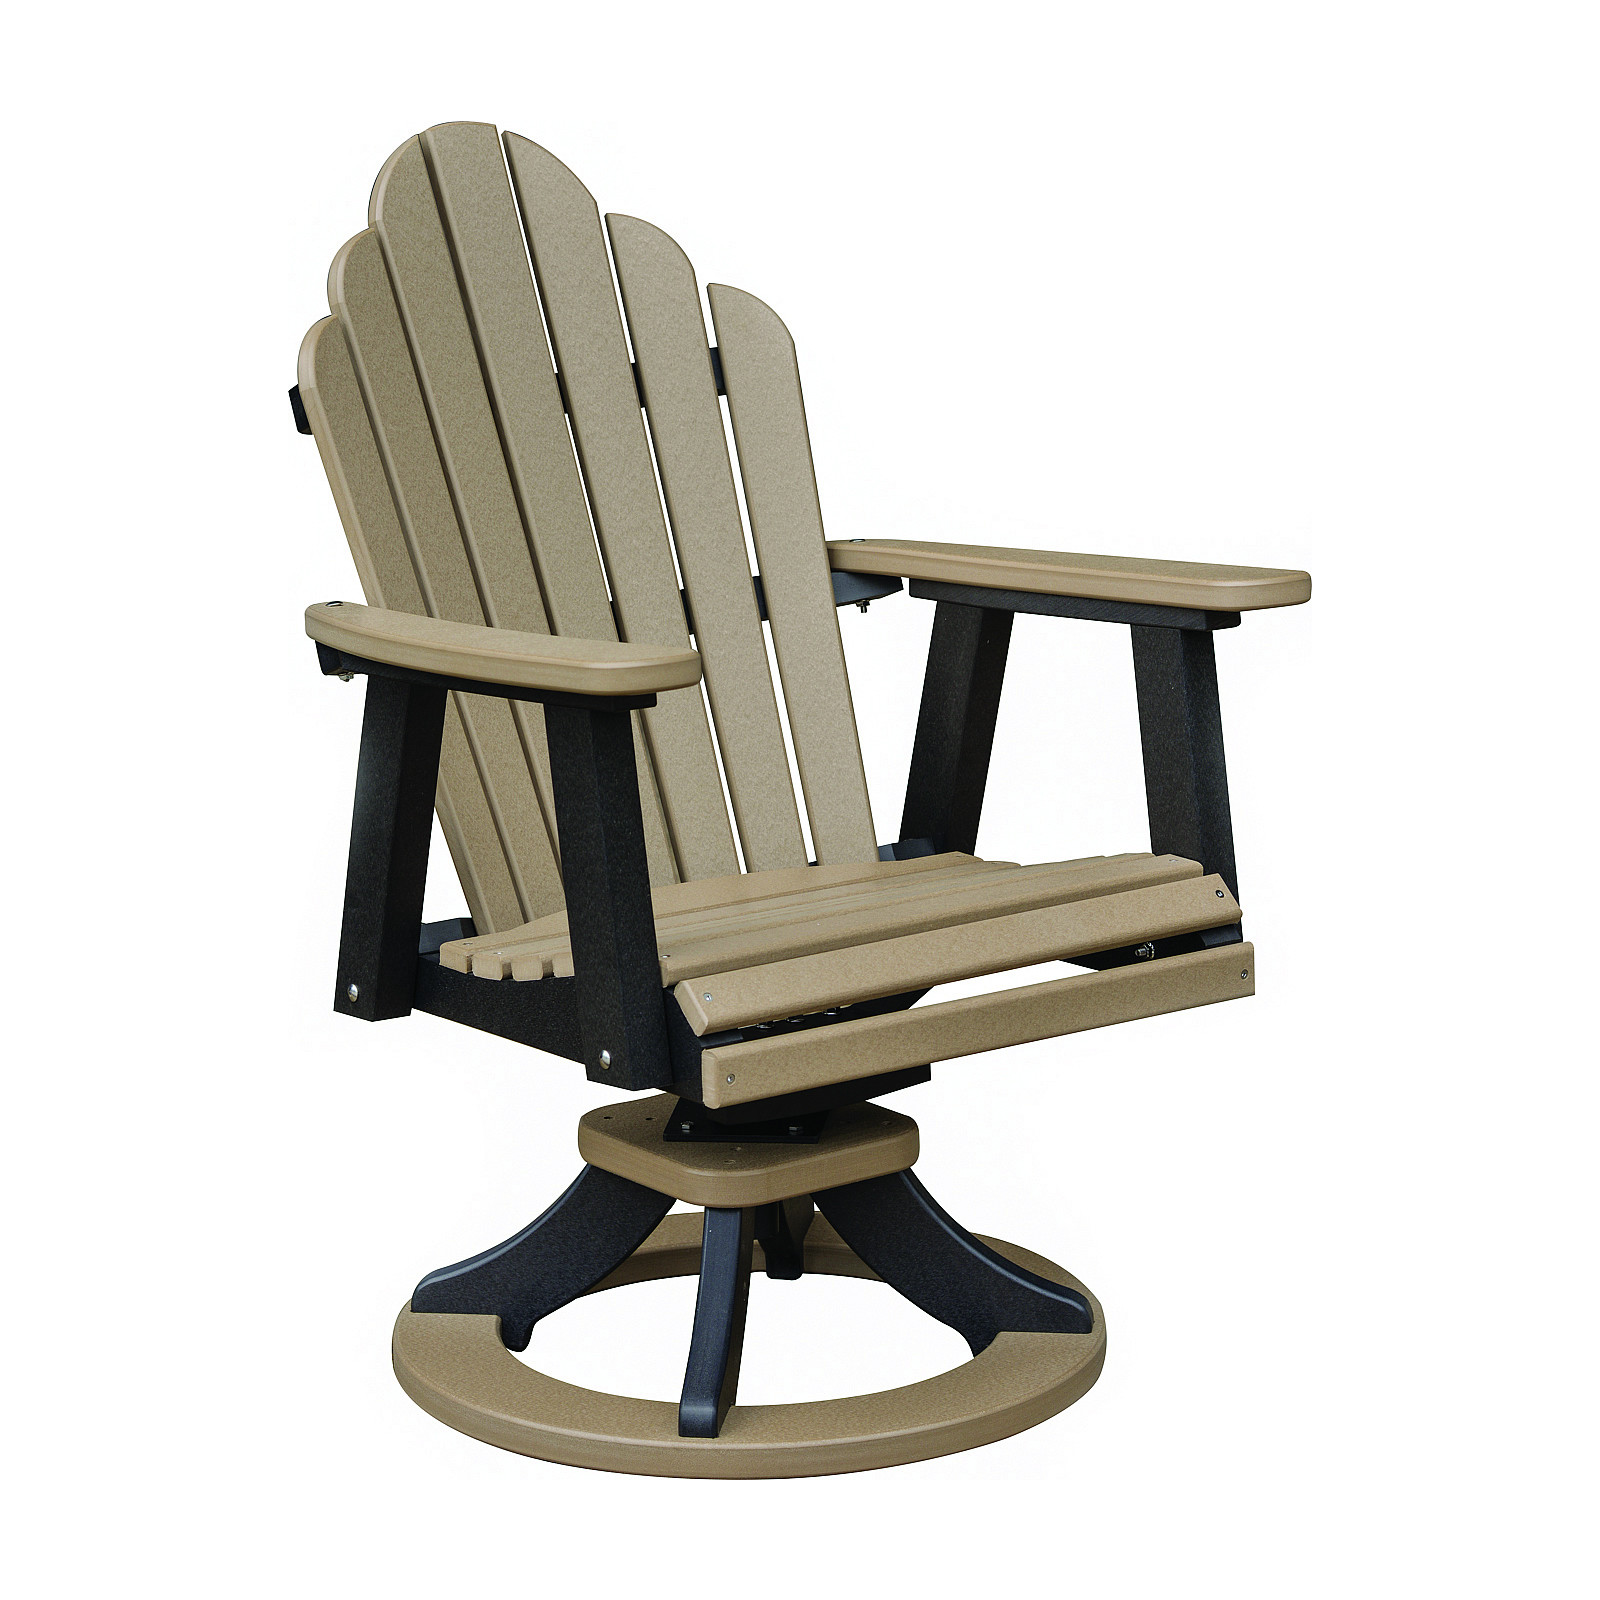 Berlin Gardens Cozi Back Swivel Rocker Dining Chair